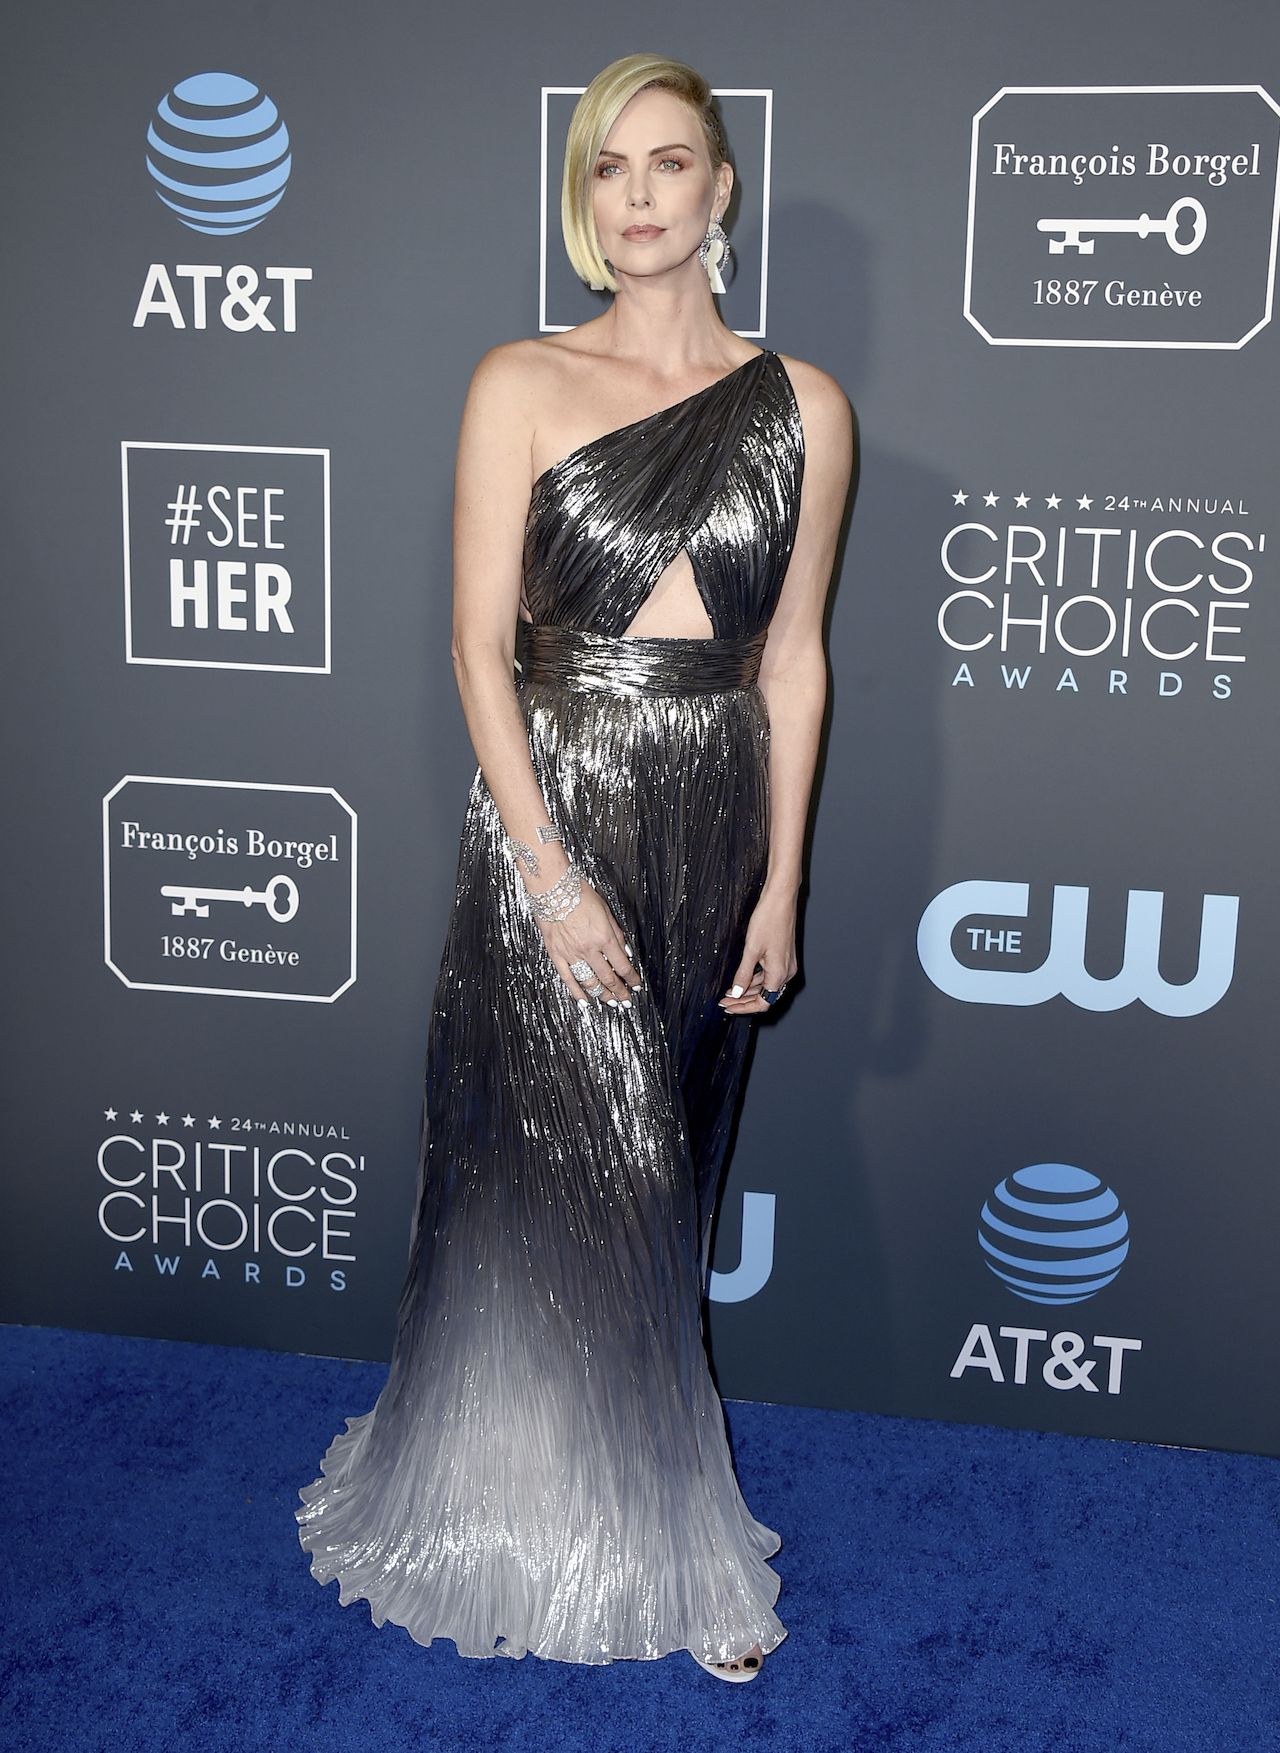 "<div class=""meta image-caption""><div class=""origin-logo origin-image ap""><span>AP</span></div><span class=""caption-text"">Charlize Theron arrives at the 24th annual Critics' Choice Awards on Sunday, Jan. 13, 2019, at the Barker Hangar in Santa Monica, Calif. (Jordan Strauss/Invision/AP)</span></div>"